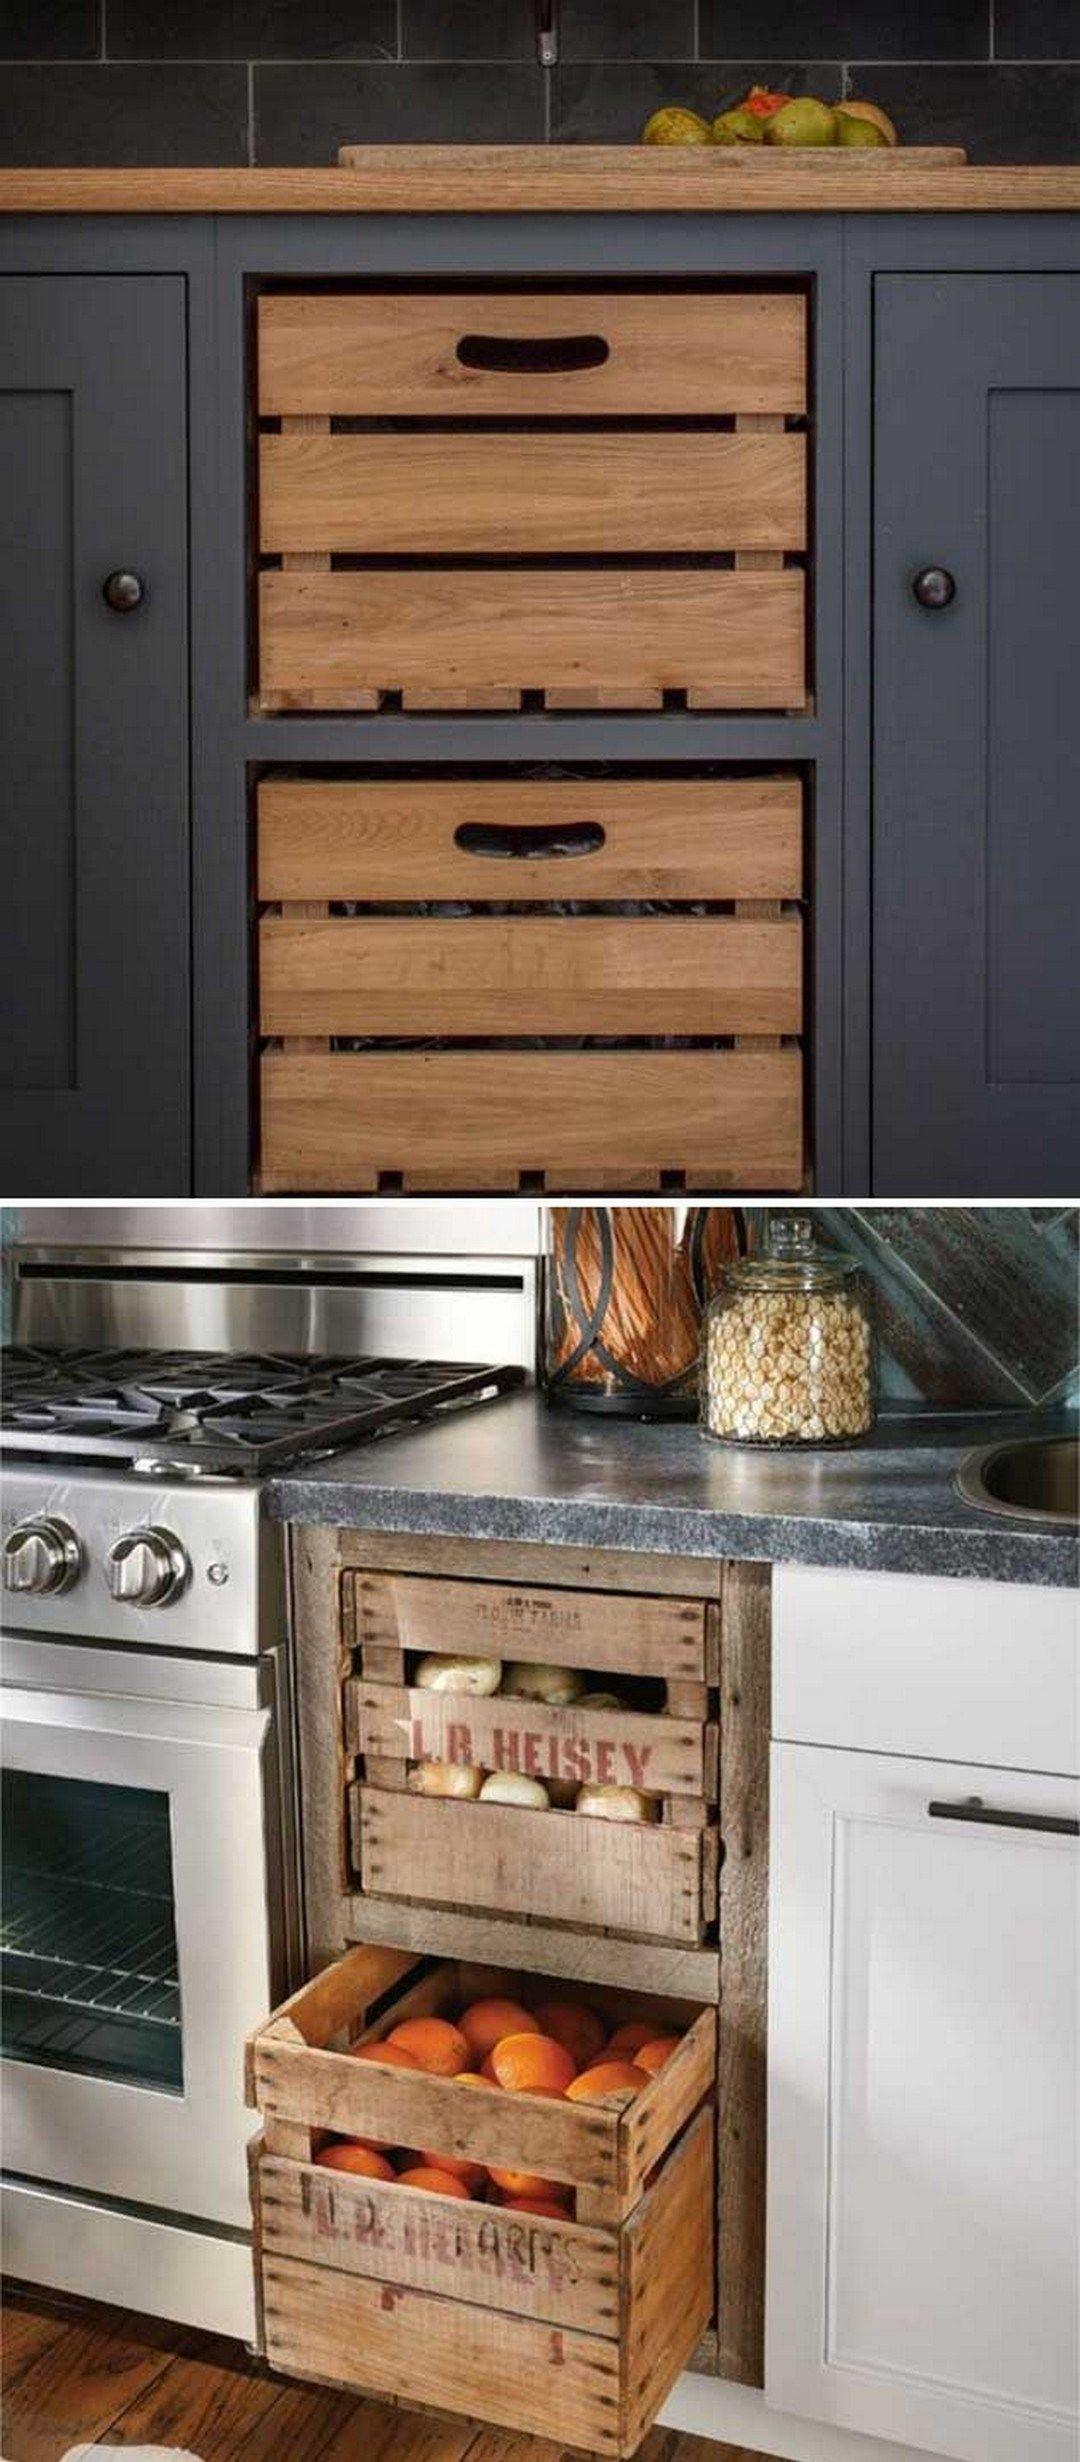 Farmhouse Kitchen Ideas On A Budget For 2017 10 Makeover Ideas